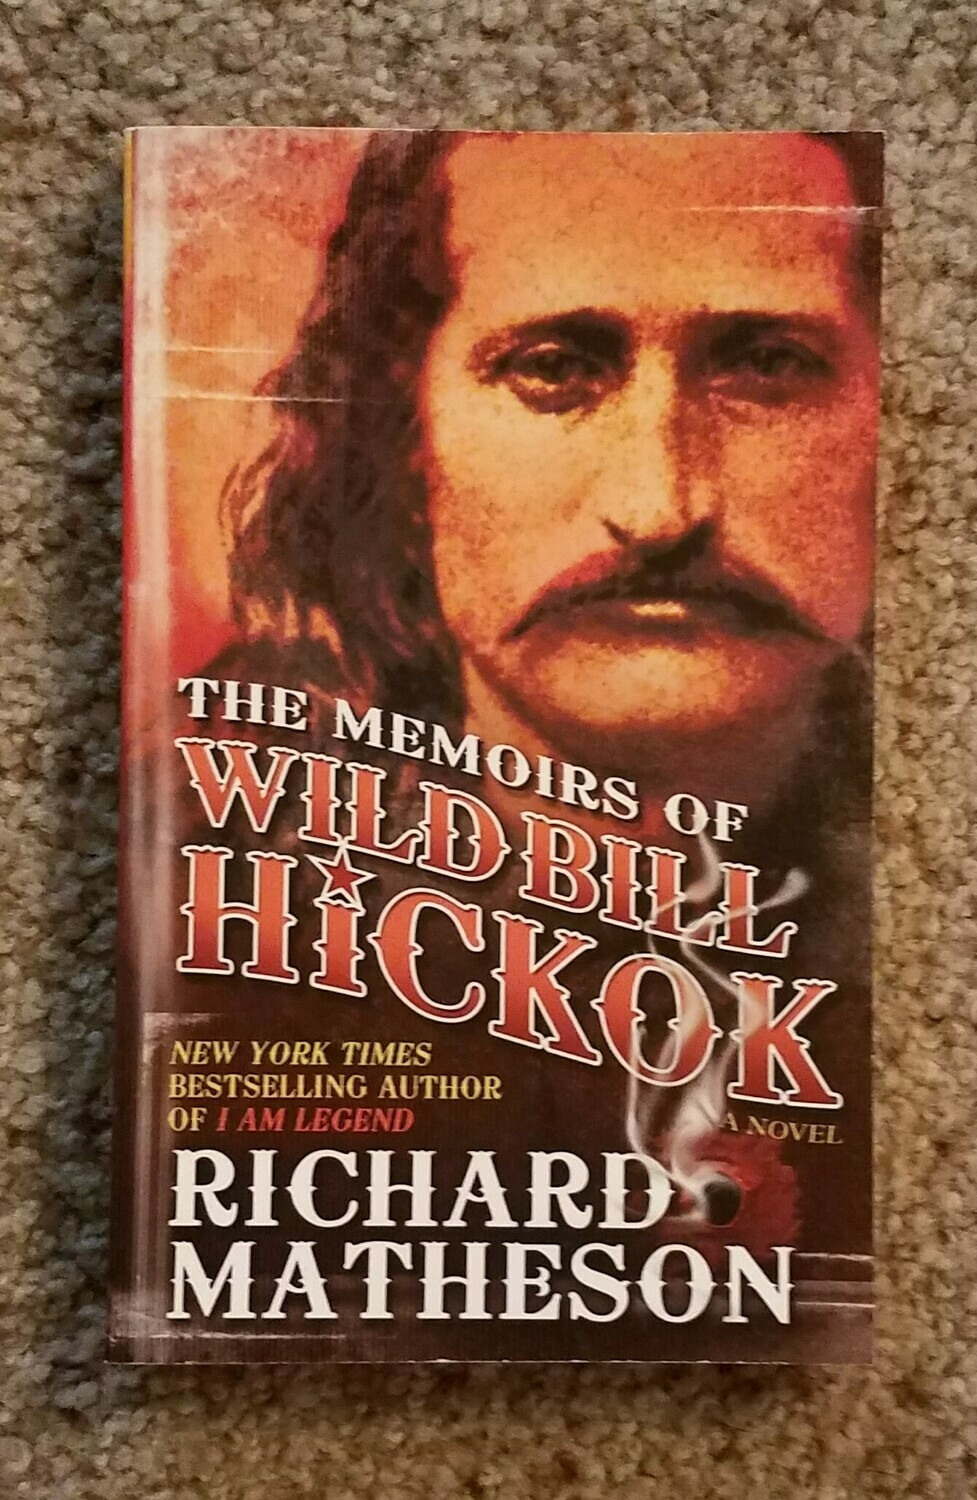 The Memoirs of Wild Bill Hickok by Richard Matheson